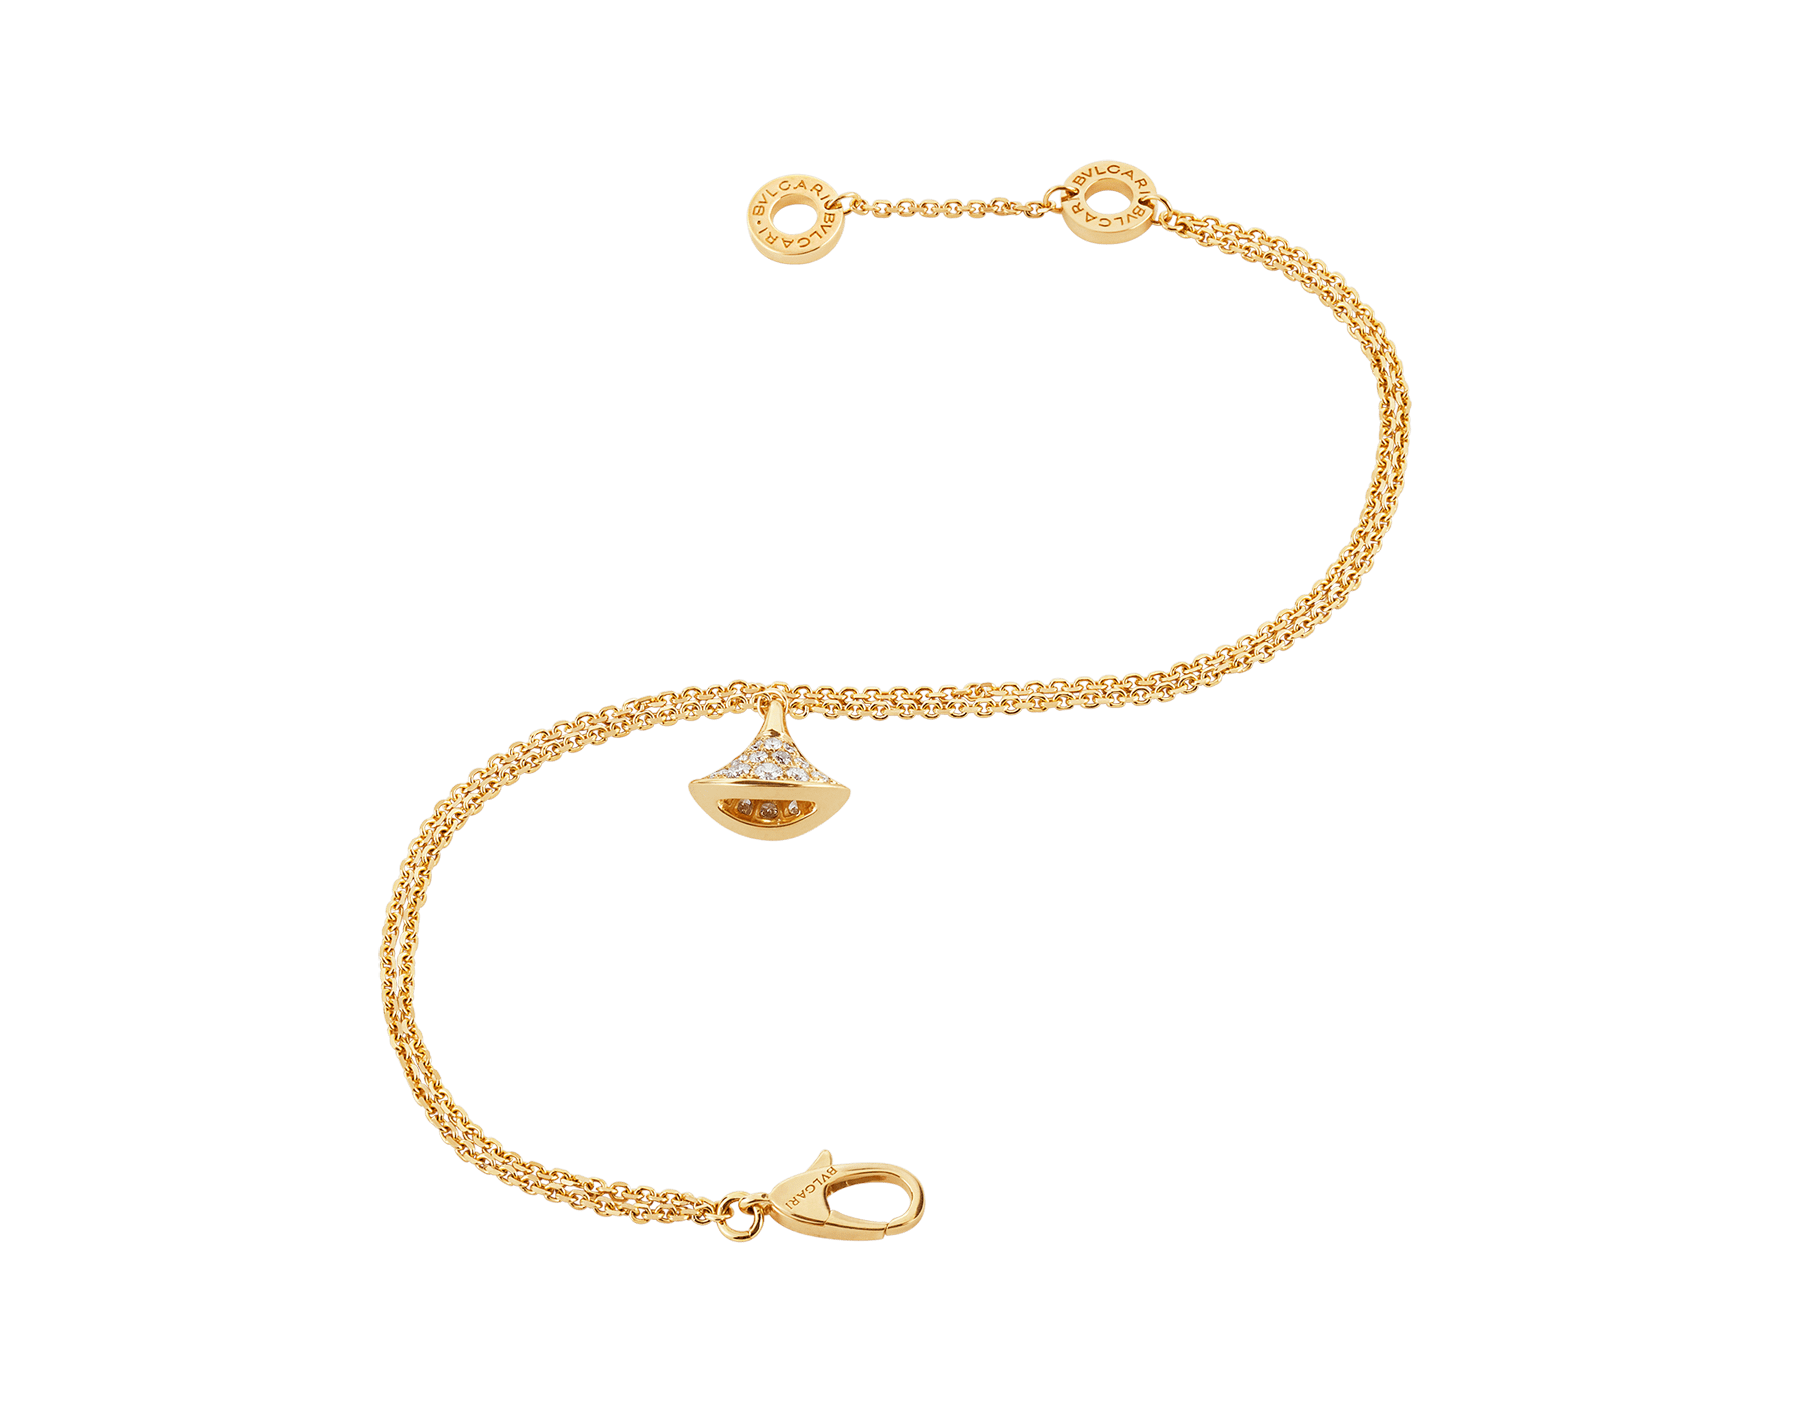 DIVAS' DREAM 18 kt yellow gold bracelet with pendant in full pavé diamonds BR858990 image 2